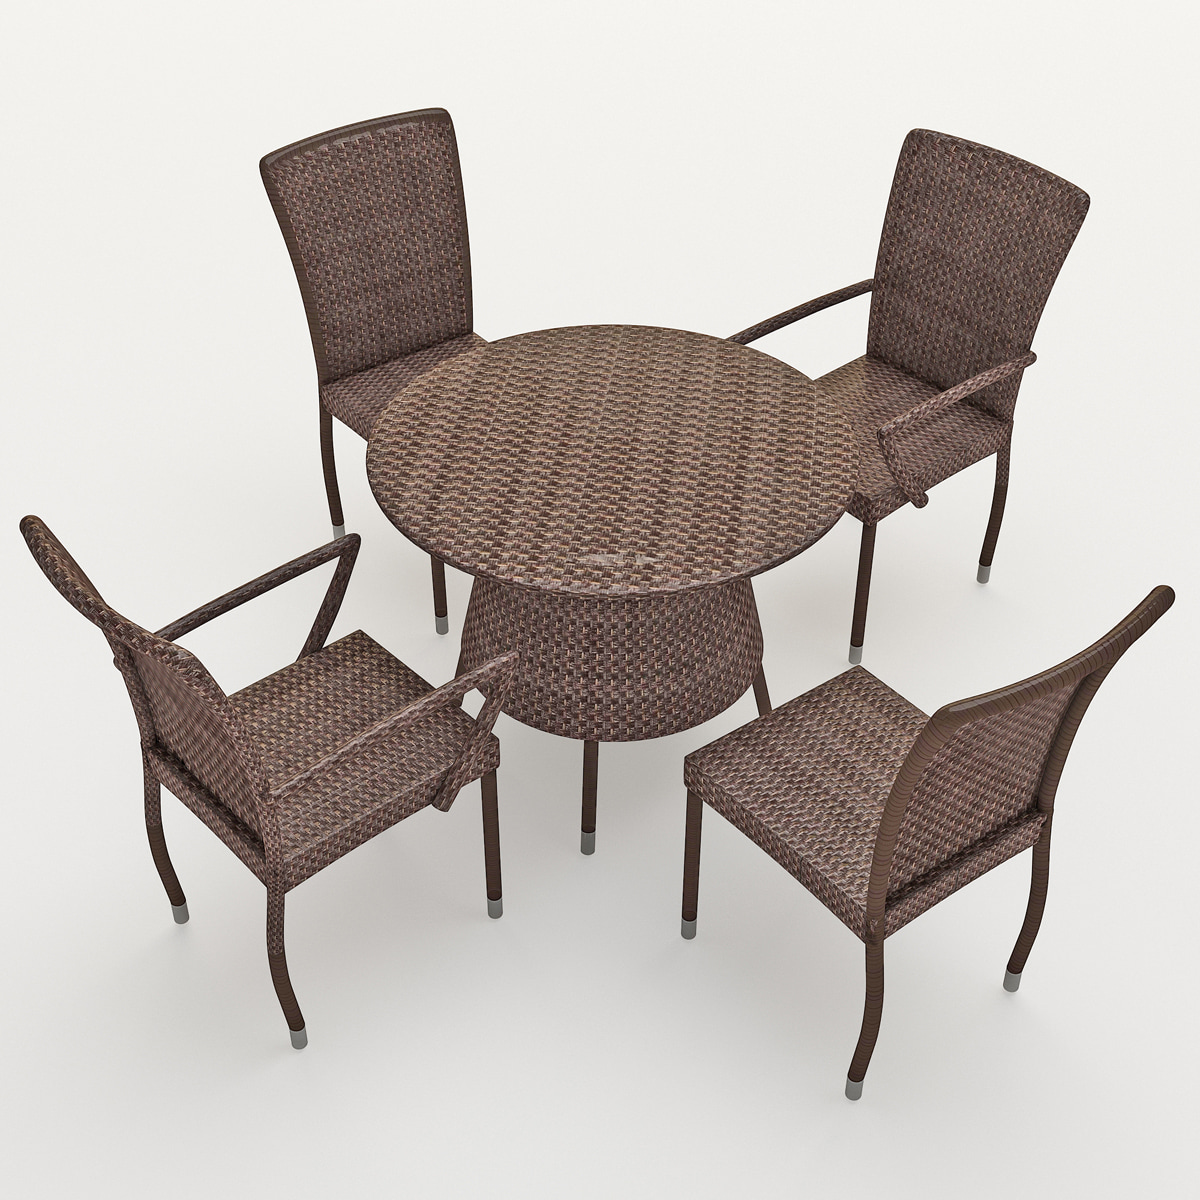 3d garden furniture model. Black Bedroom Furniture Sets. Home Design Ideas